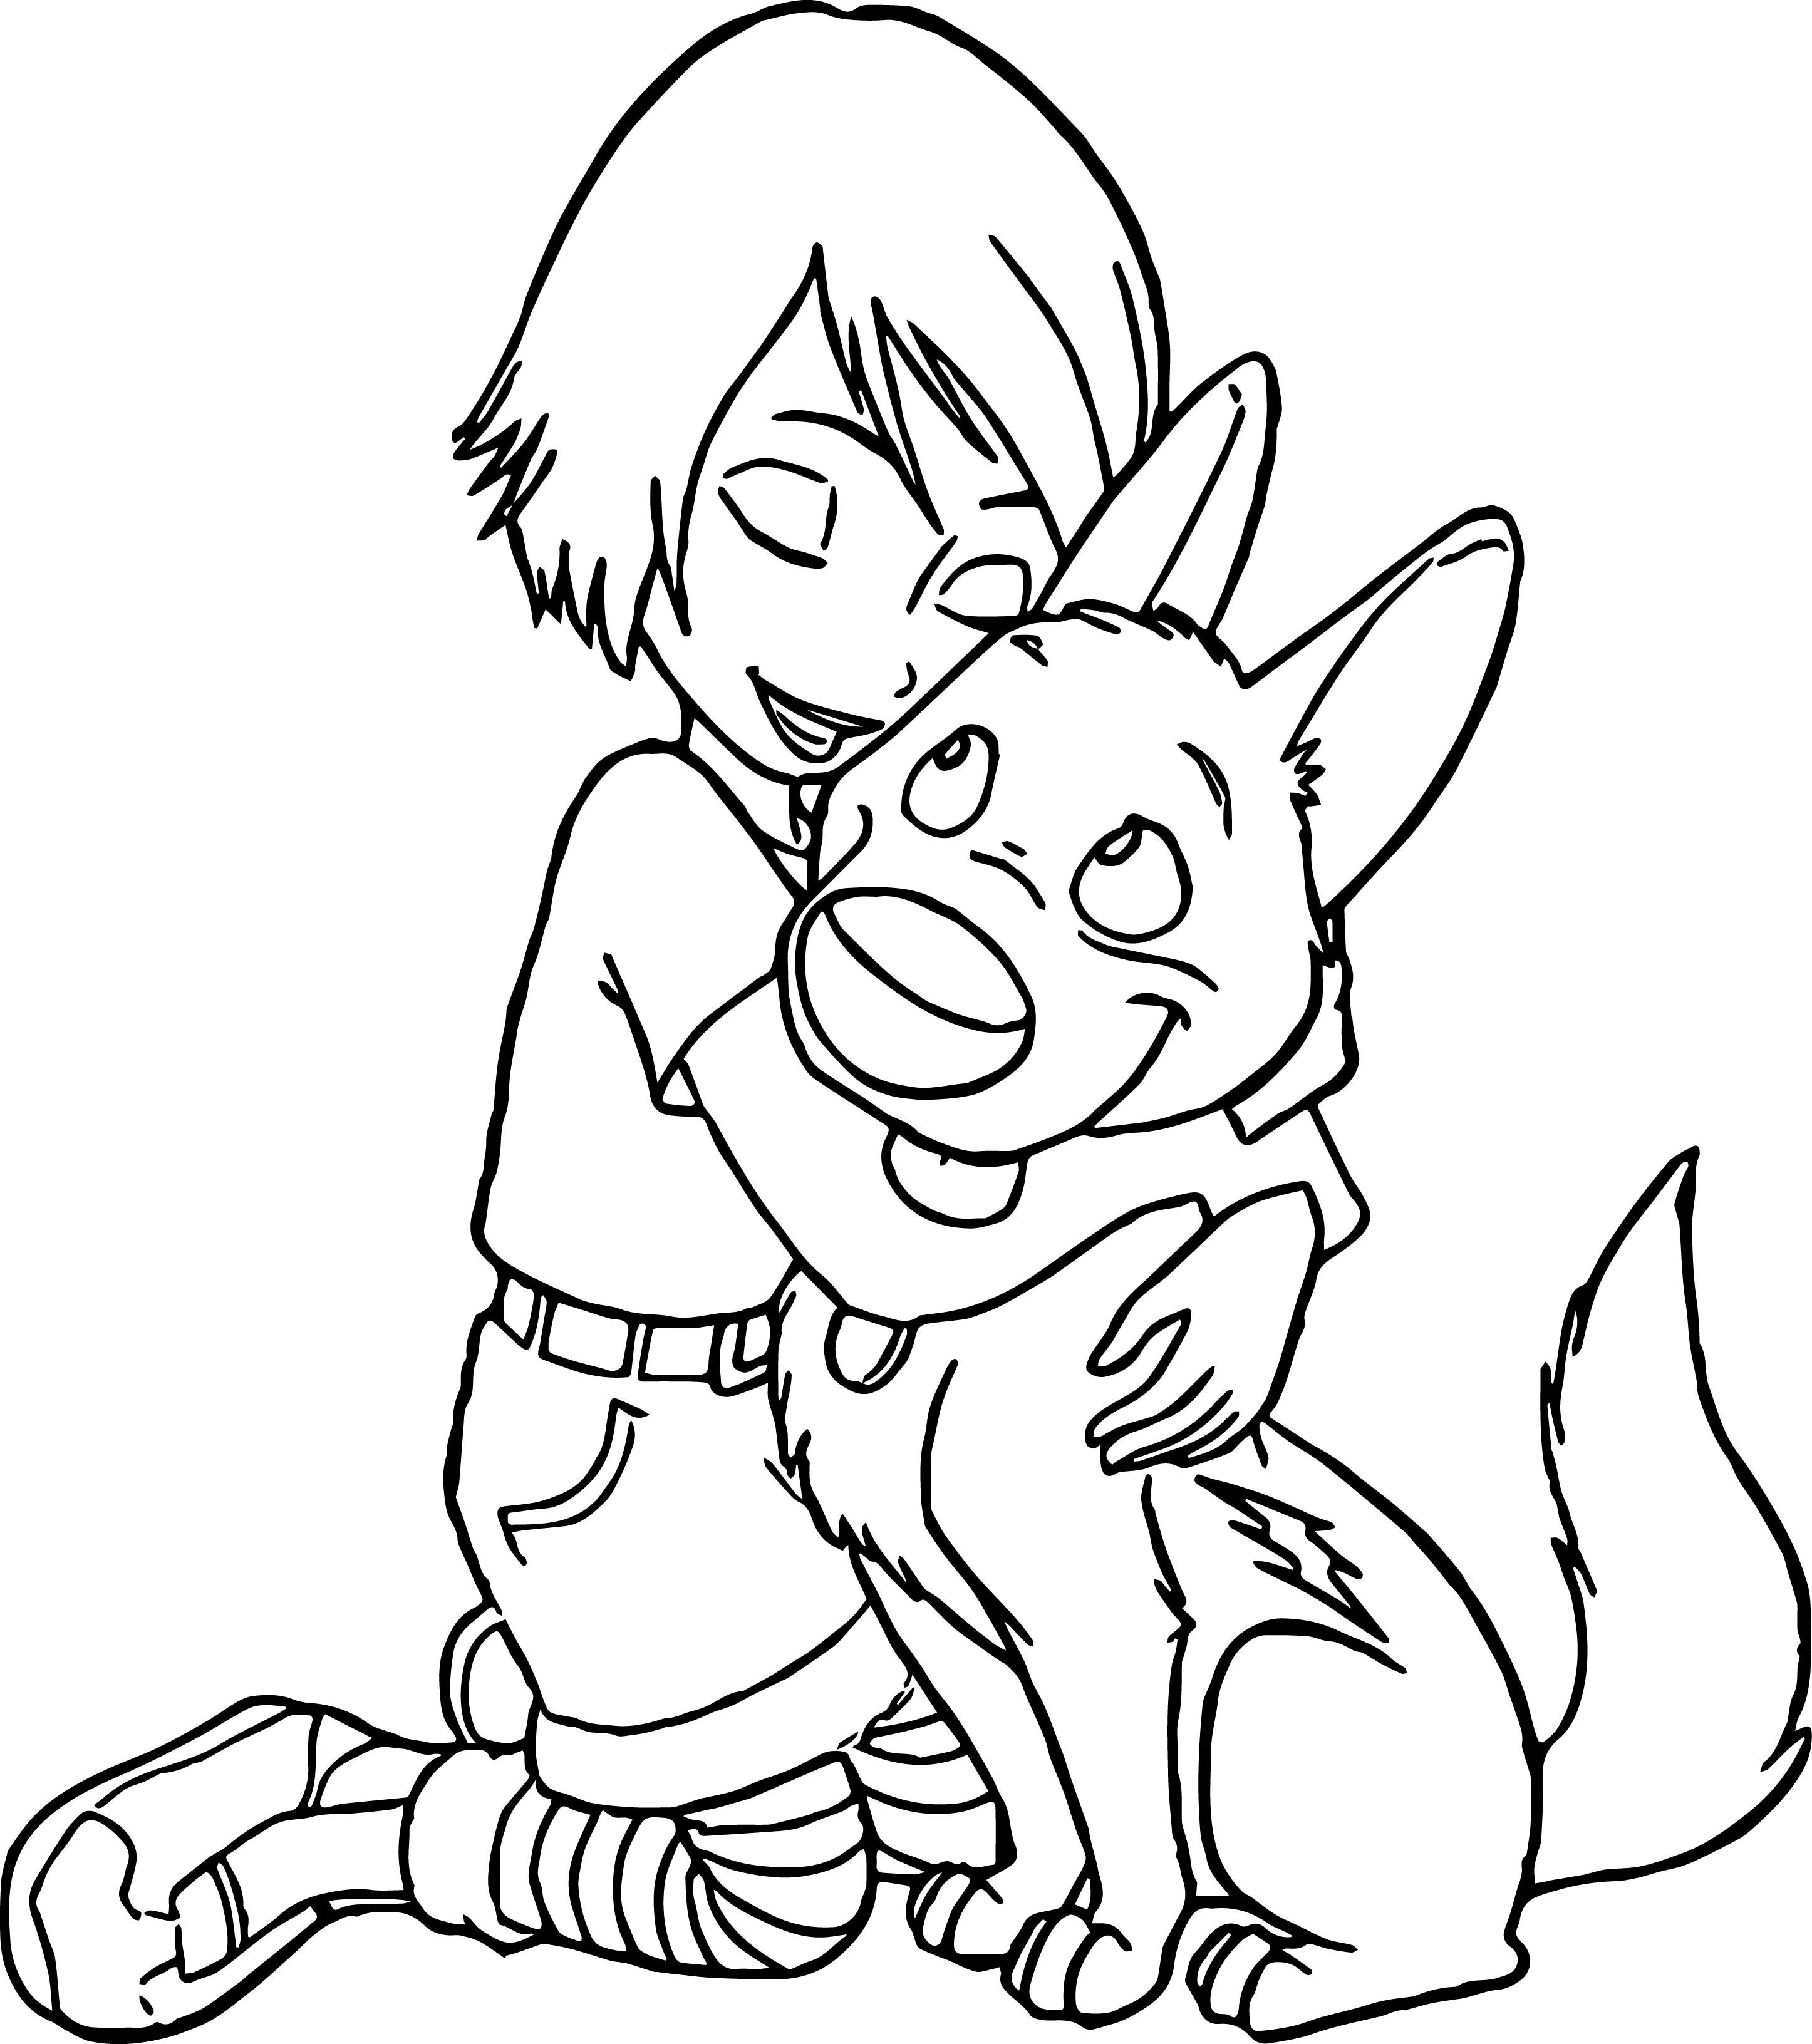 Bolt Dog Coloring Pages | wecoloringpage | Pinterest